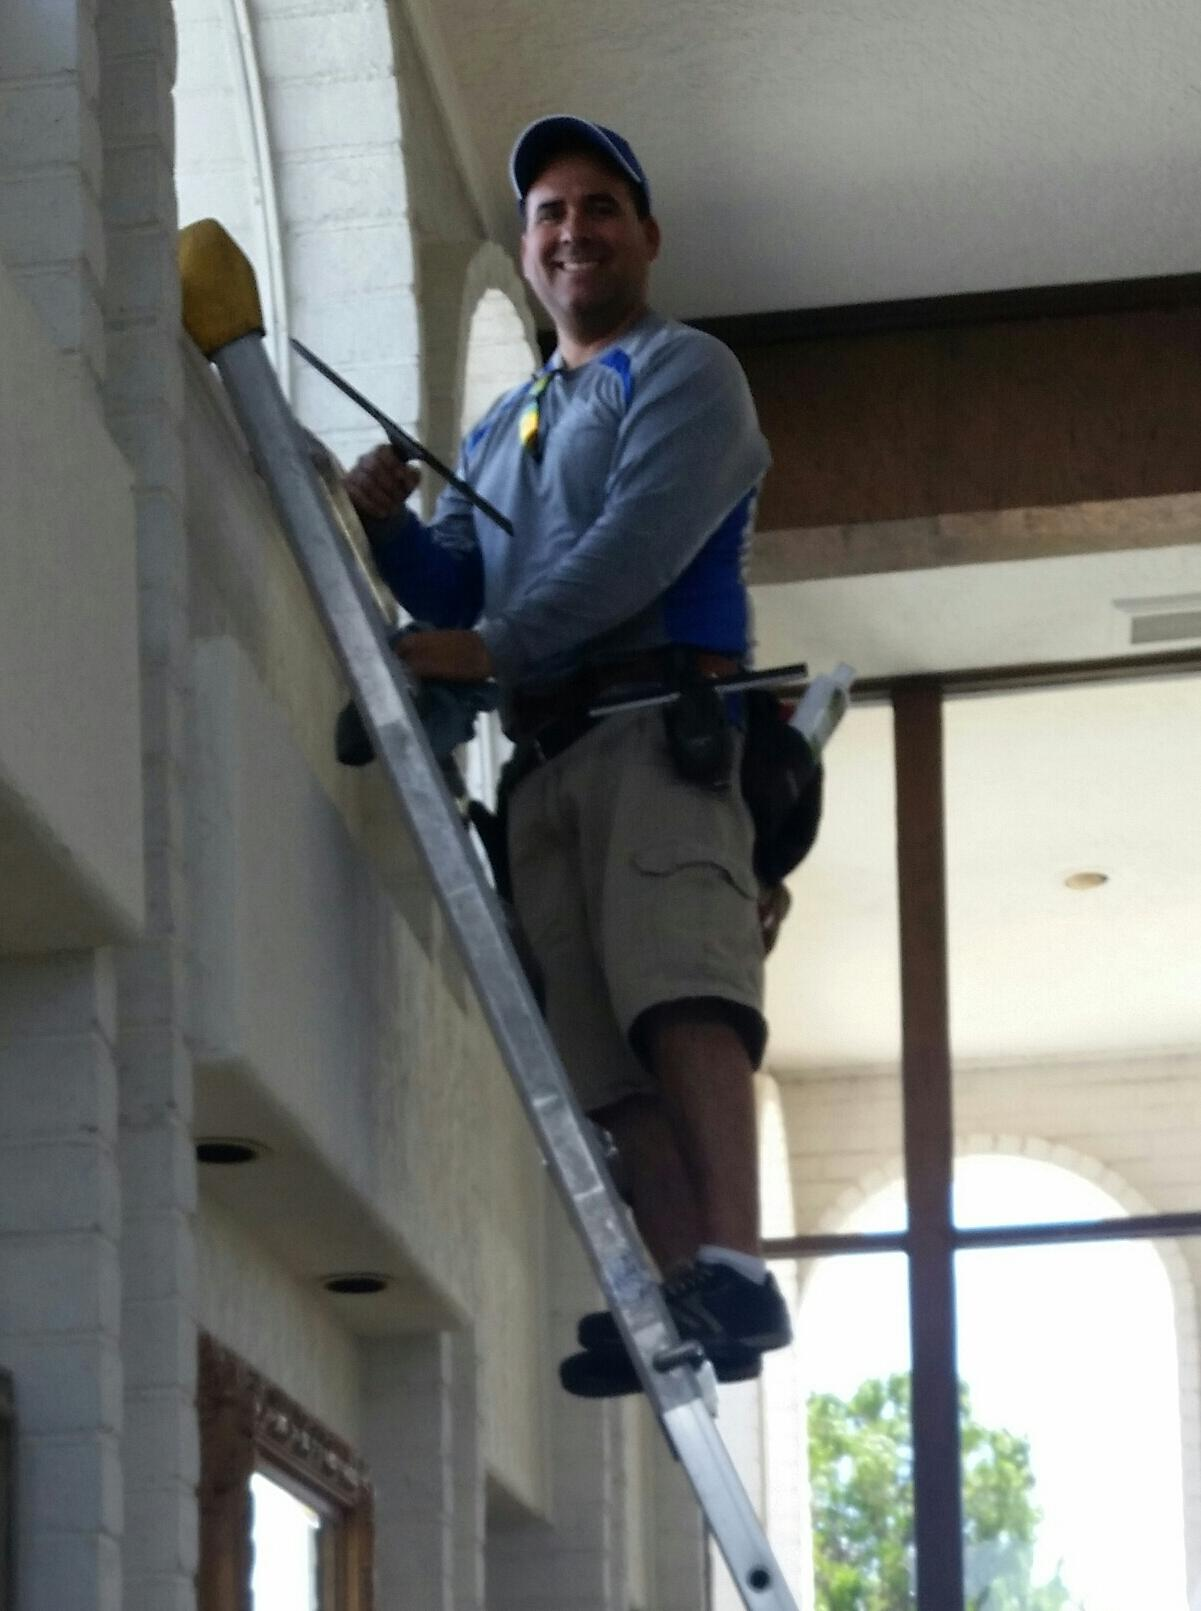 Pete Sanchez, owner on a ladder cleaning a window in a commercial building